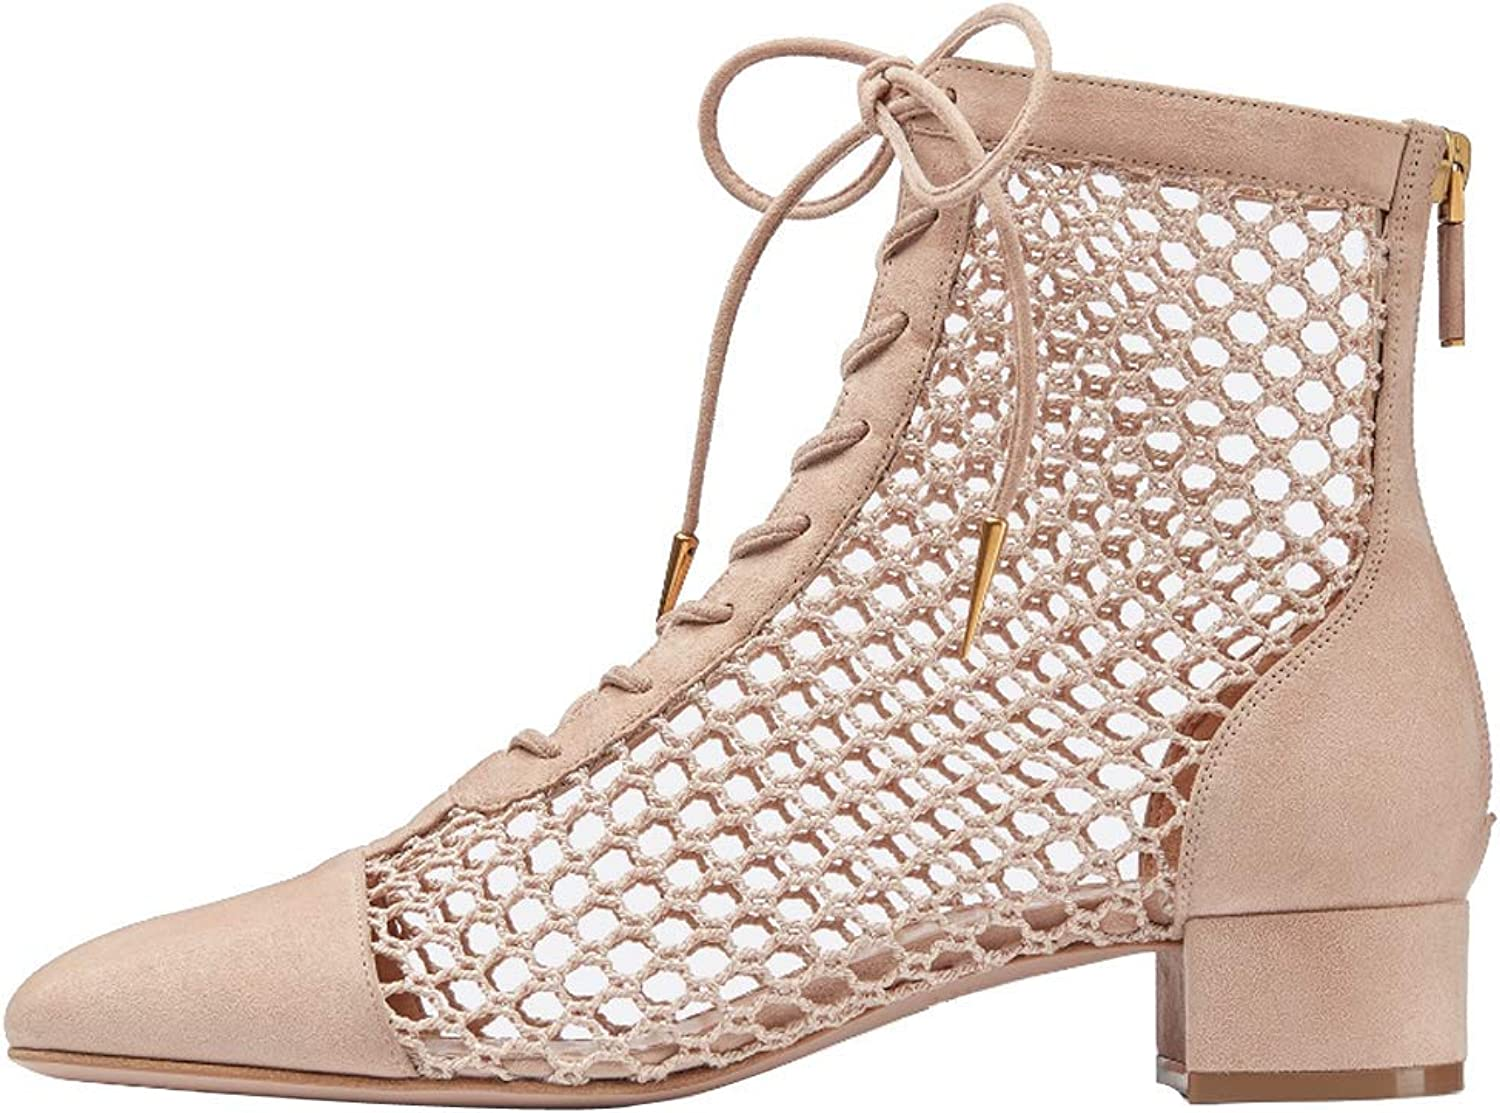 Themost Hollow Ankle Boots, Lace Up Low Heel Chunky Boot Zipper Summer Booties